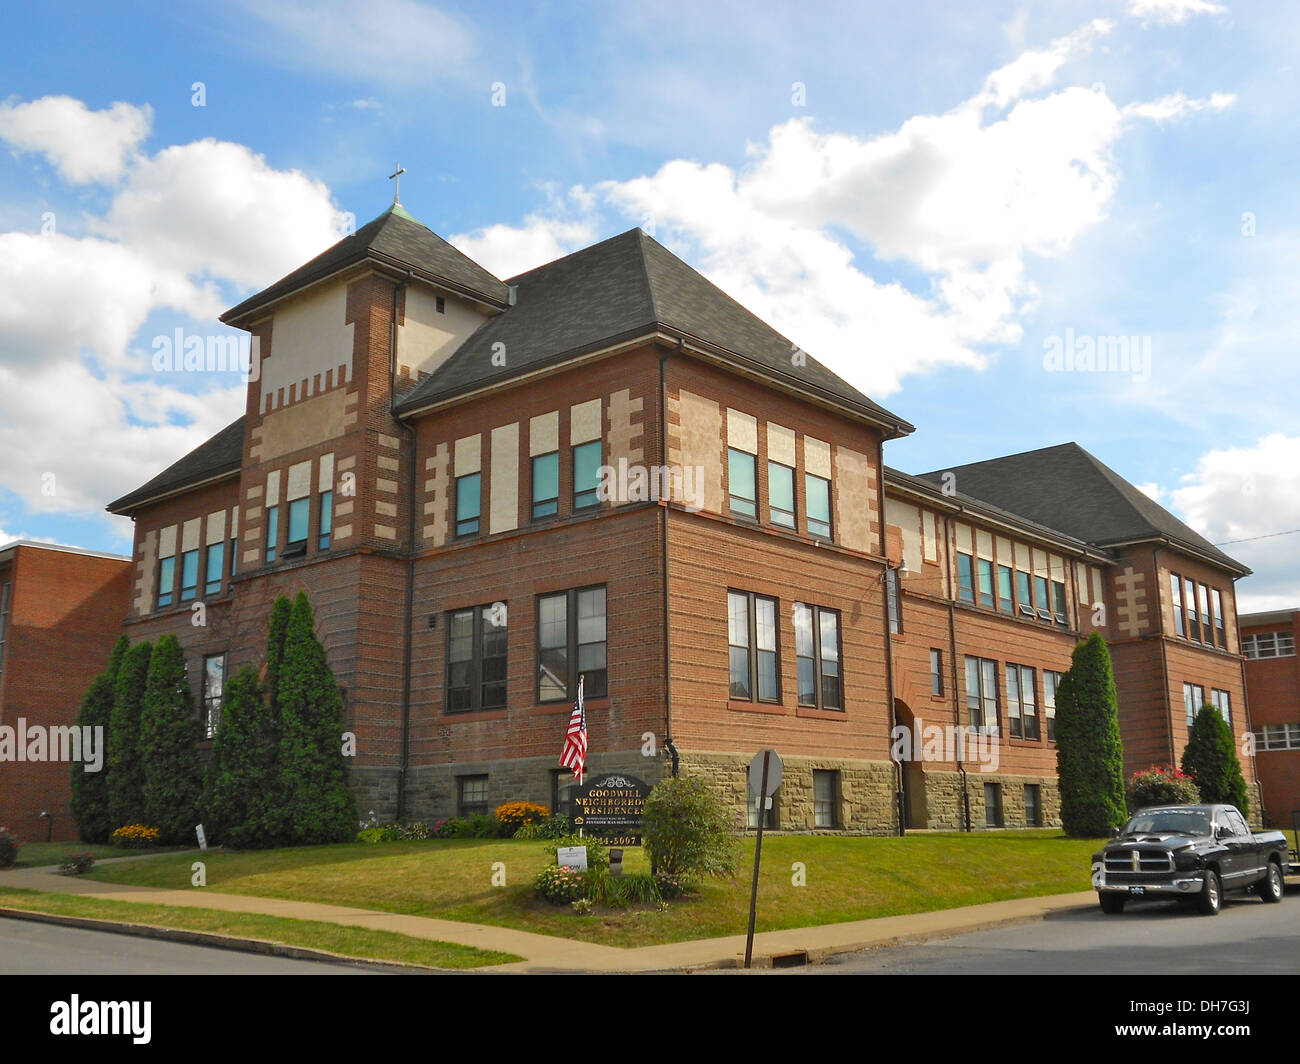 Goodwill Industries Stock Photos & Goodwill Industries Stock Images ...